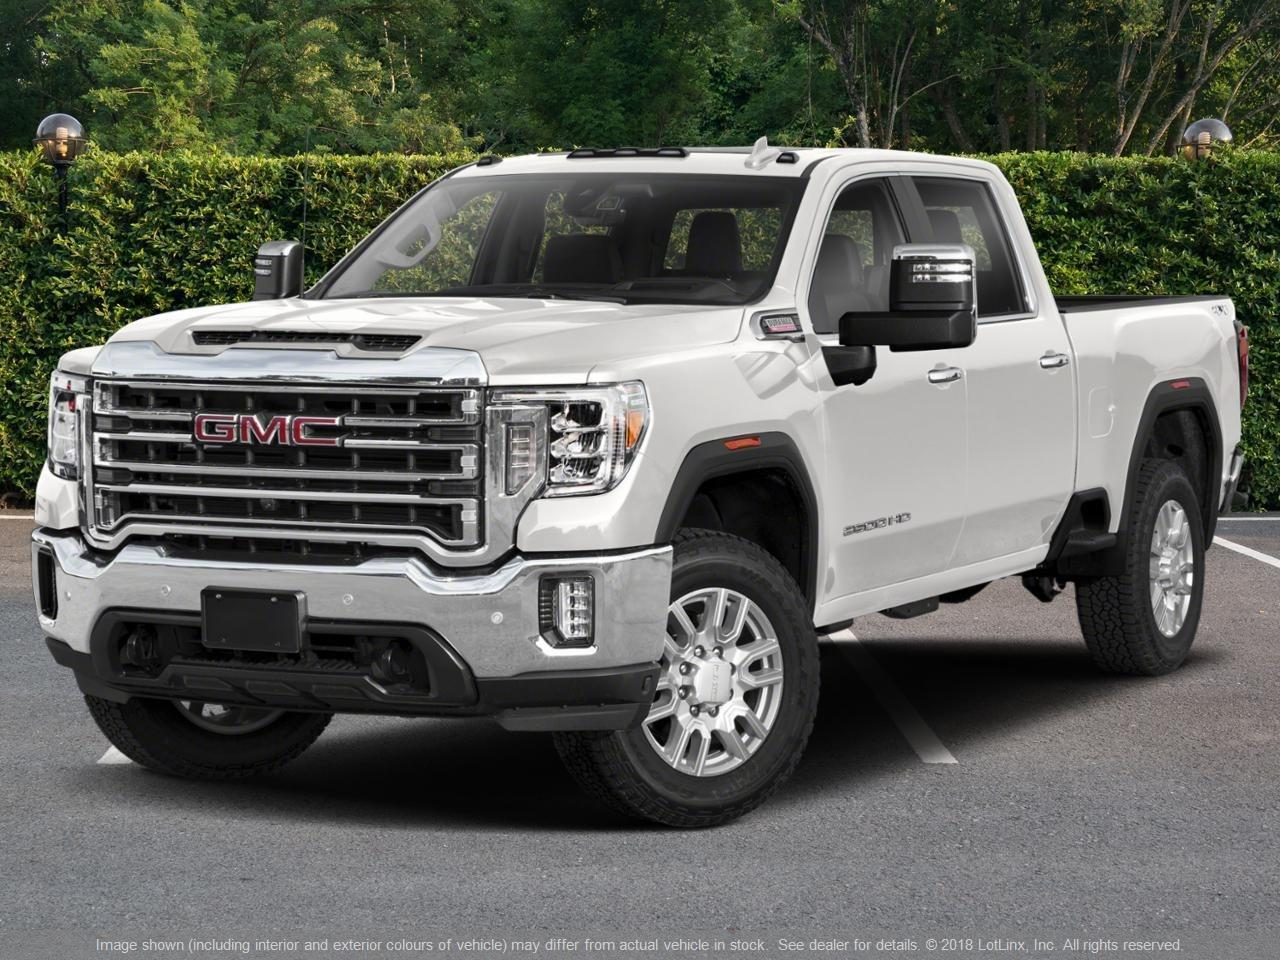 used 2020 gmc sierra 2500 hd at4 for sale in winnipeg, manitoba carpages.ca